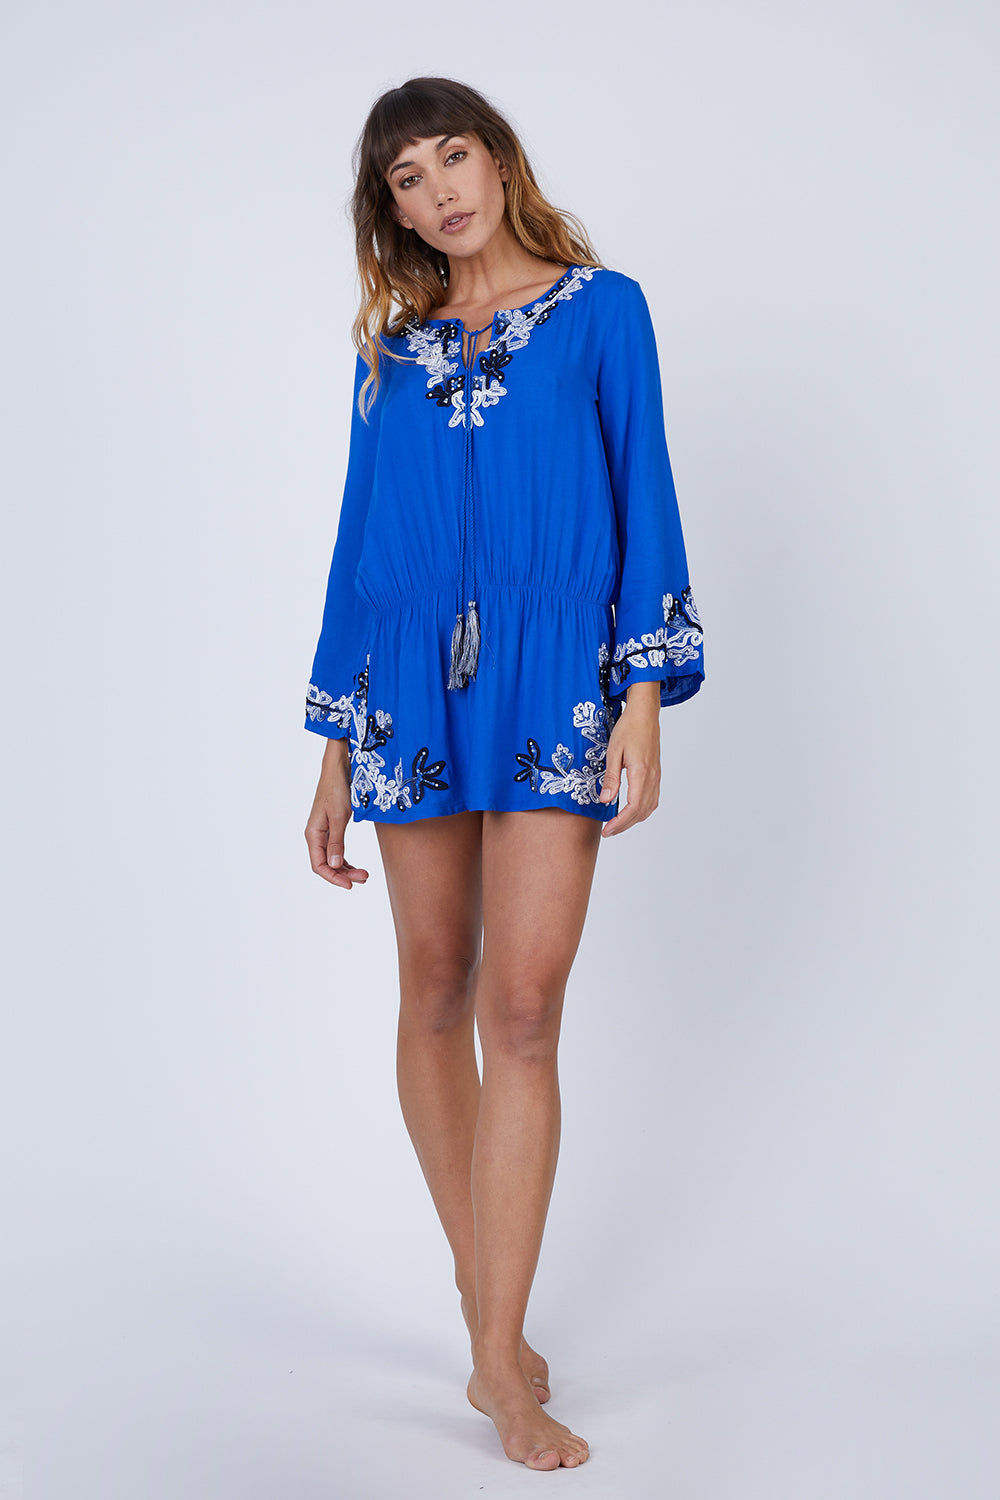 AMITA NAITHANI Floral Crush Dress - Blue Dress | Blue| Amita Naithani Floral Crush Dress - Blue. Floral embroidered dress Long sleeves Front tie closure with tassel detail Rayon modal 100% Rayon Hand wash Front View